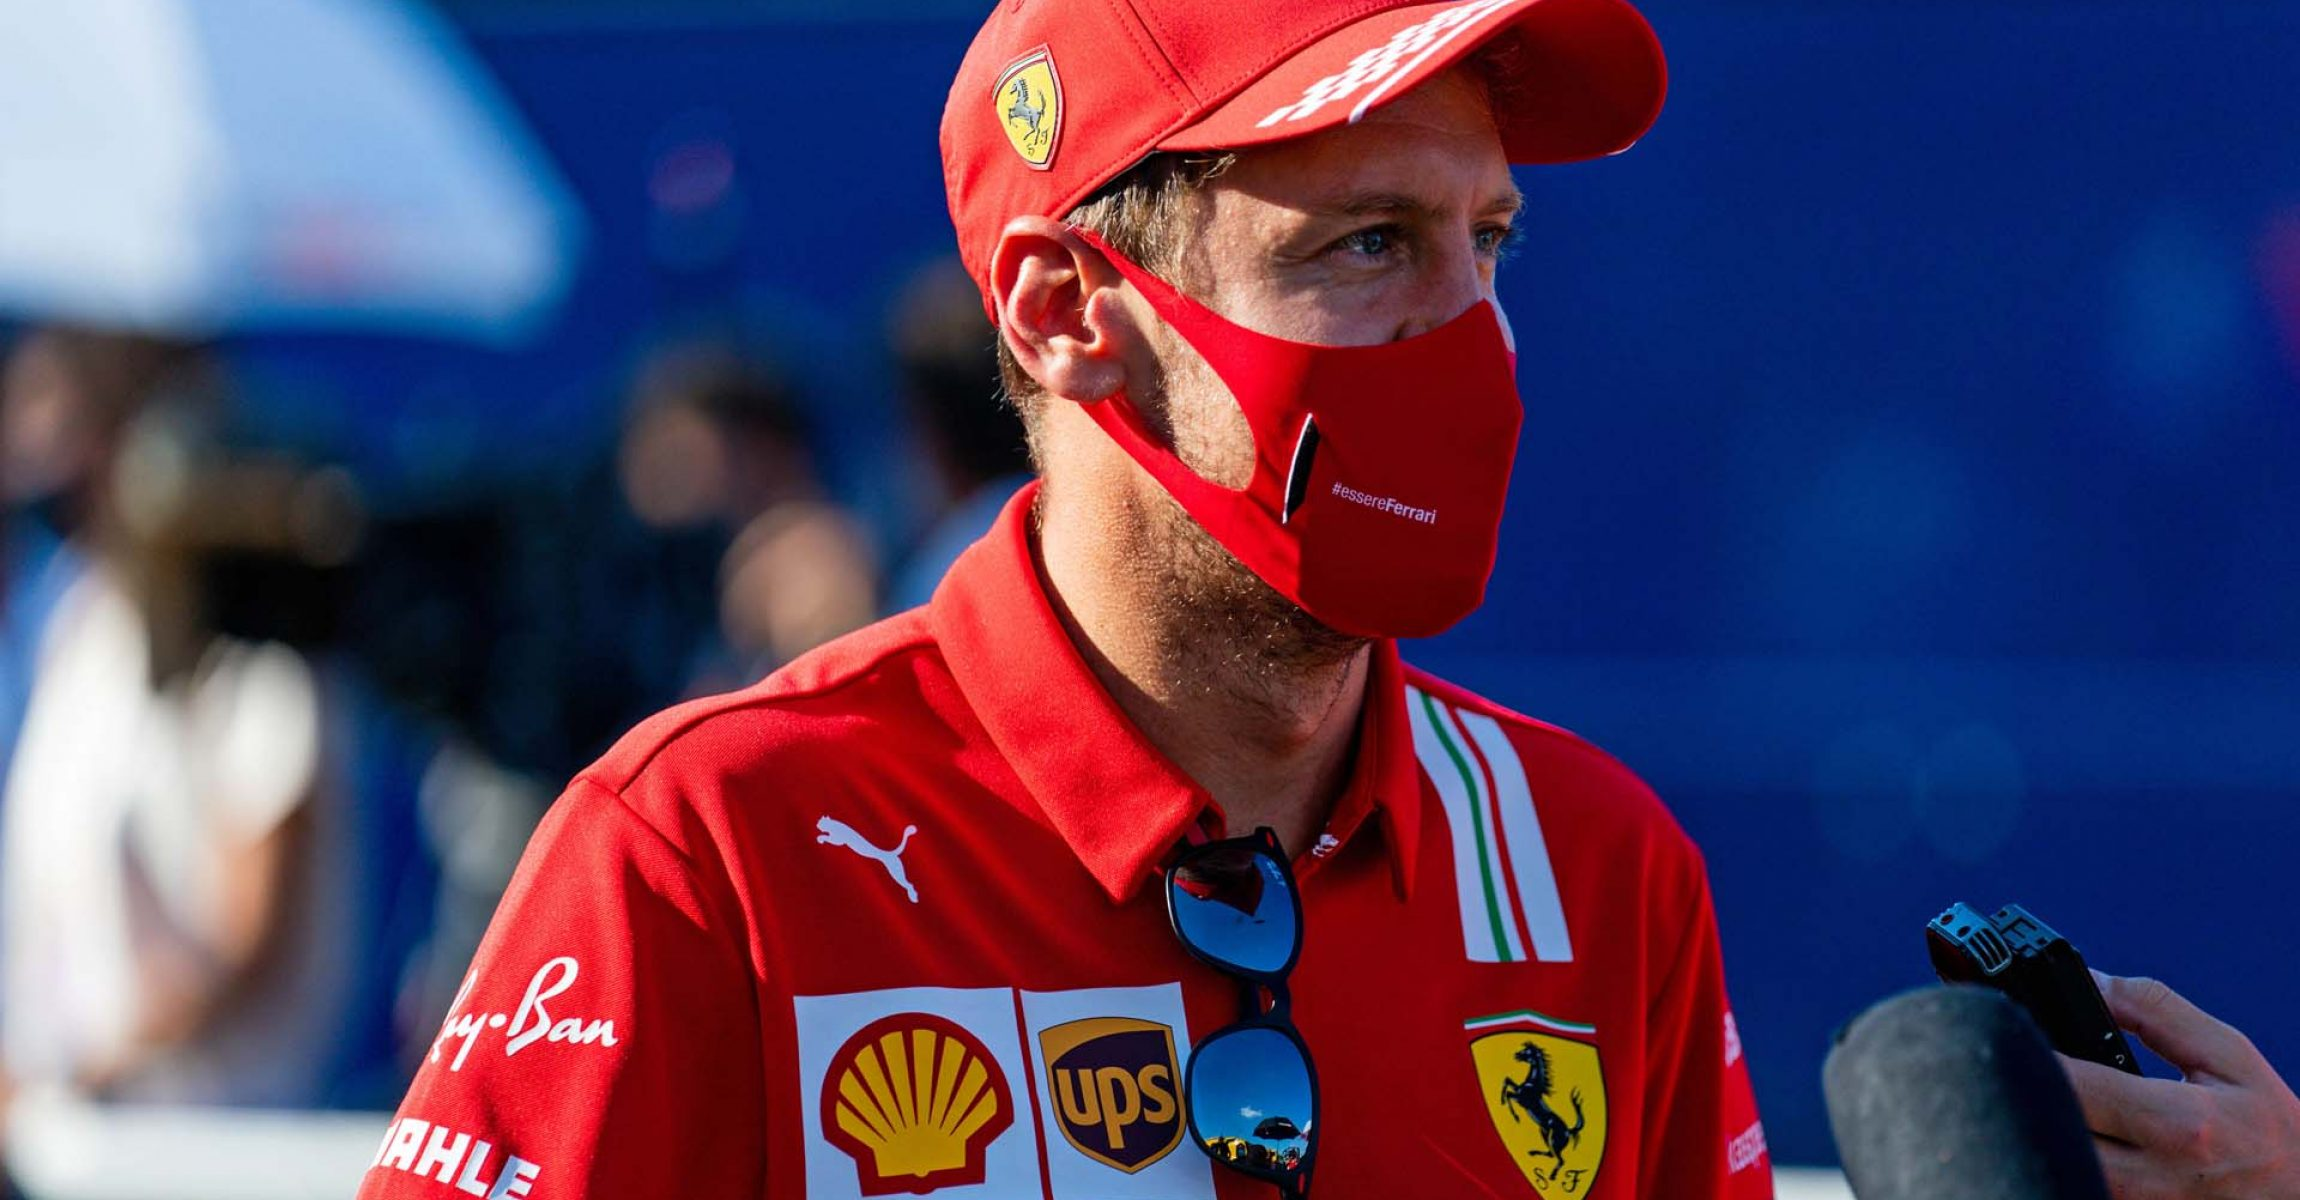 GP ITALIA F1/2020 -  GIOVEDI 03/09/2020        credit: @Scuderia Ferrari Press Office Sebastian Vettel